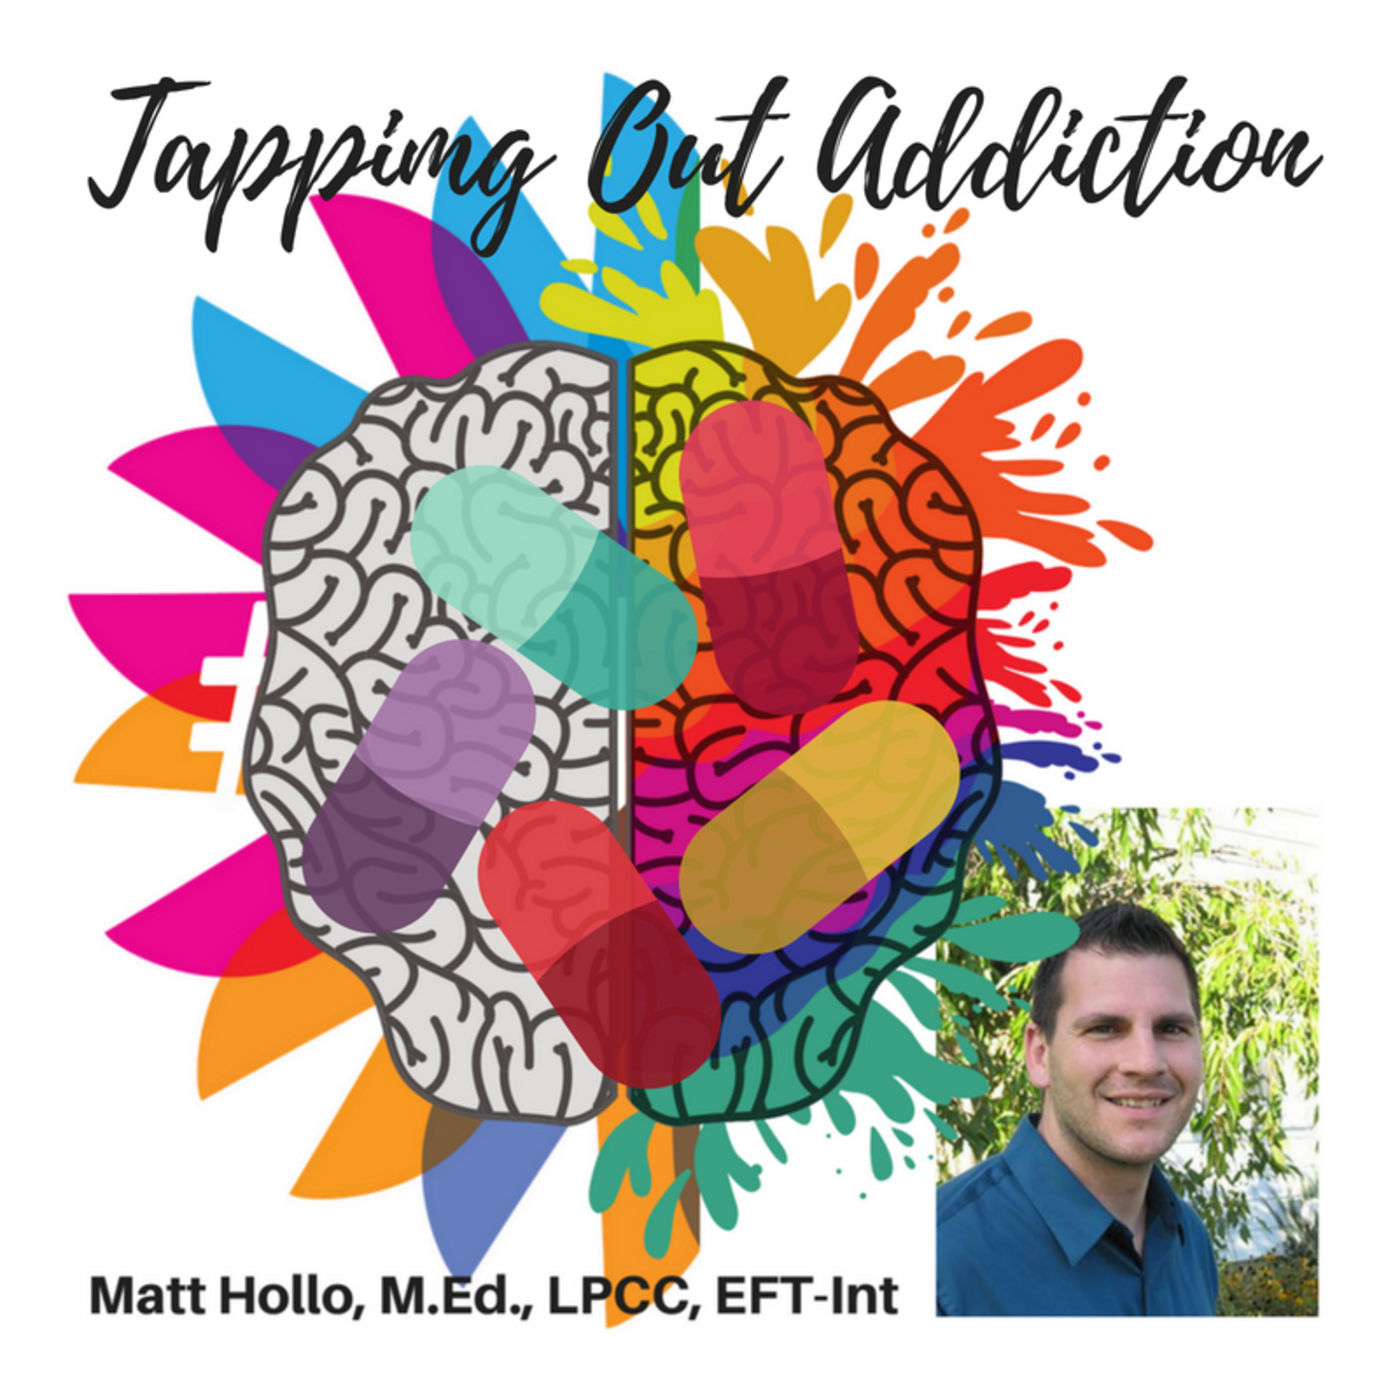 Tapping Out Addiction, The Opioid Epidemic w/Matt Hollo, Ep. 49